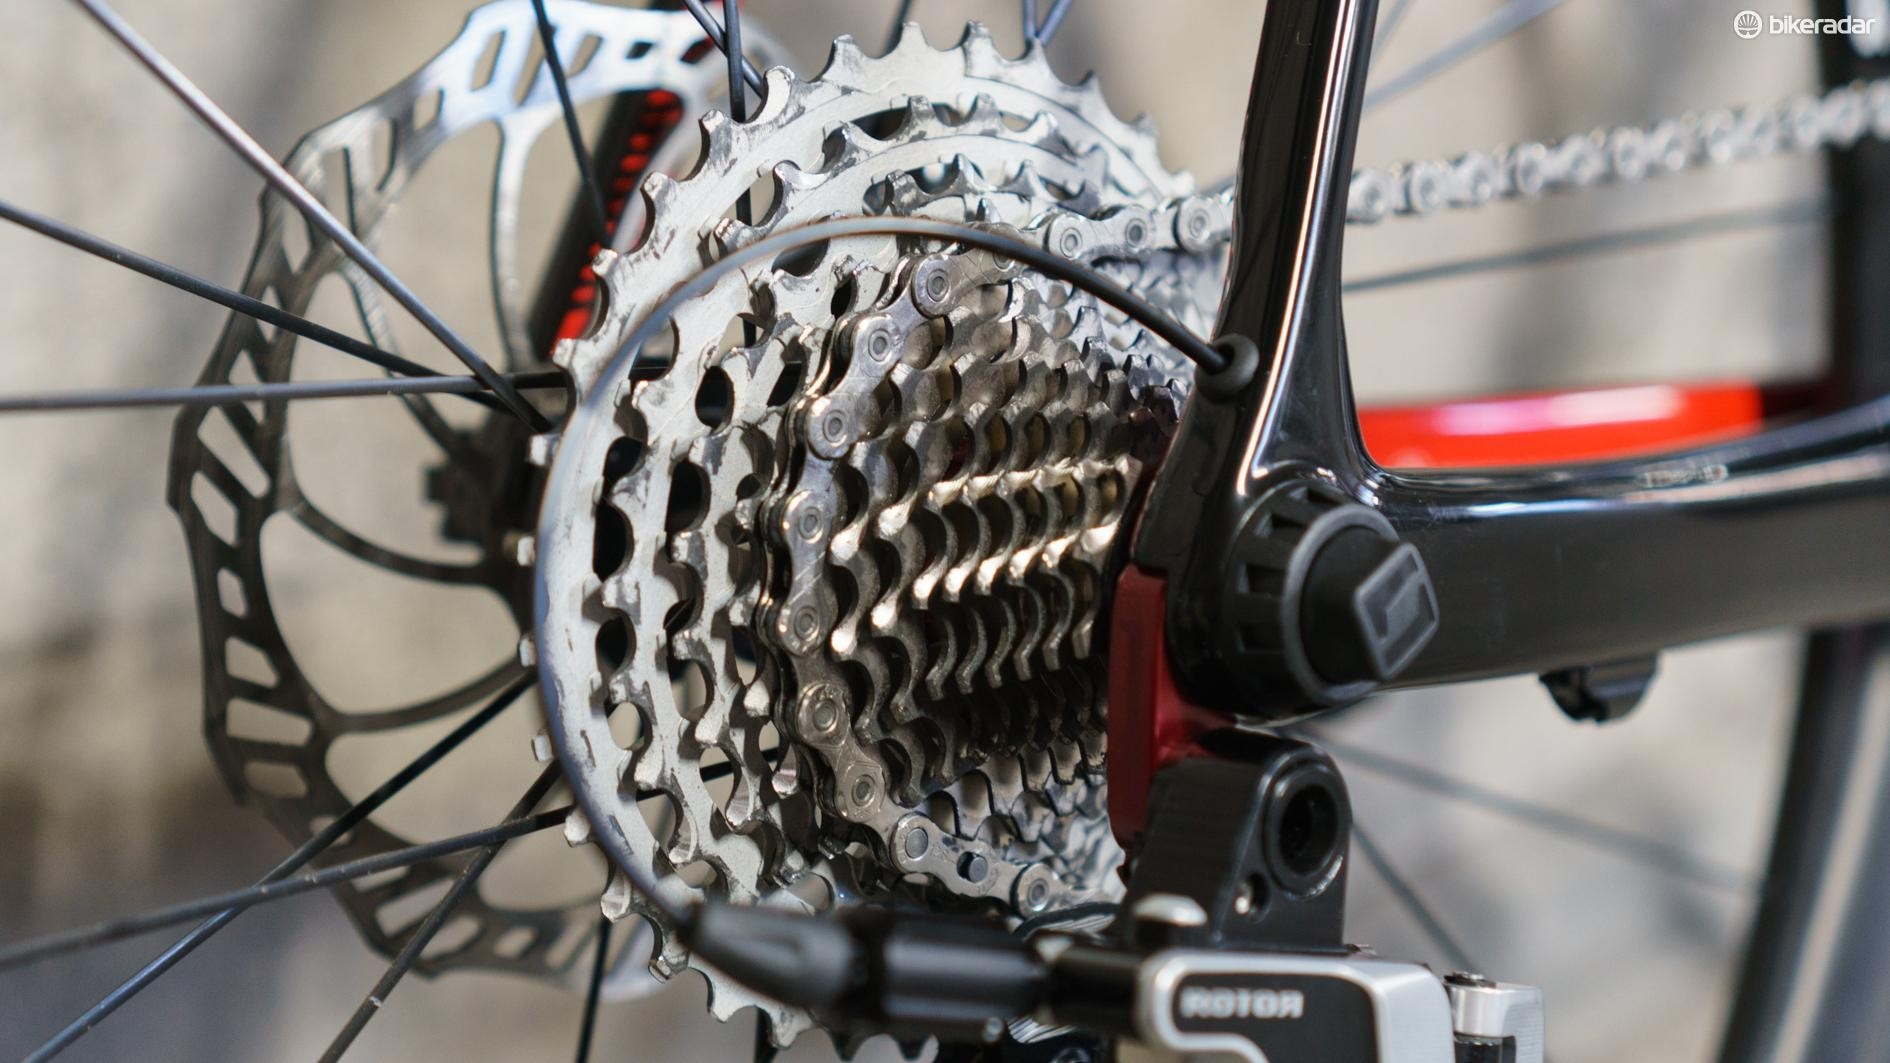 The 13-speed cassette currently requires you to use Rotor's own hubs